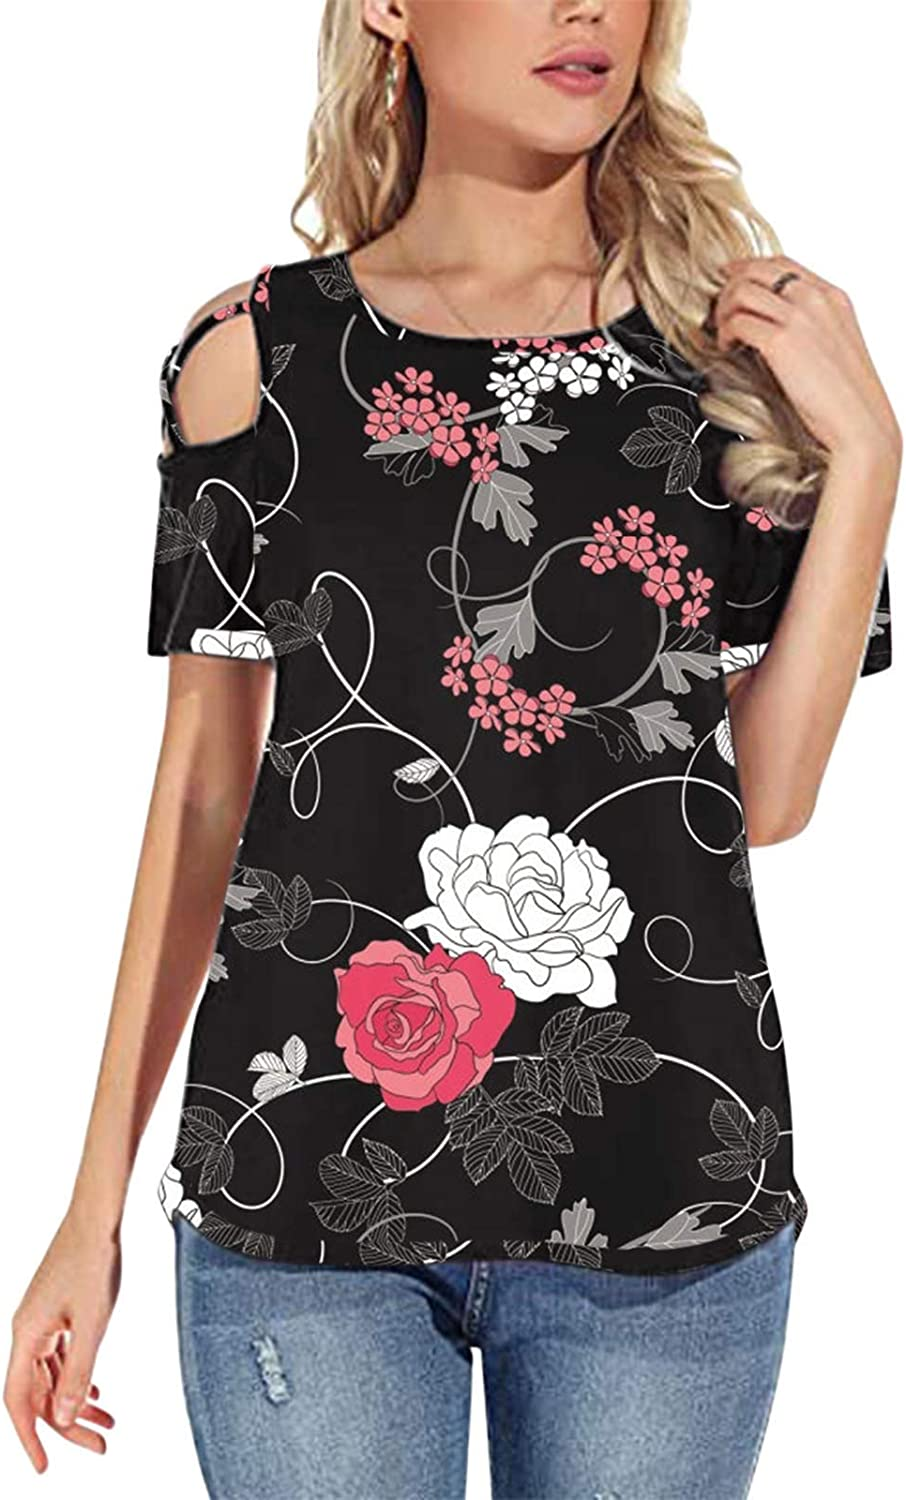 Womens Summer T Shirts Short Sleeve Tunic Strappy Cold Shoulder Tops,Off The Shoulder Tops for Women